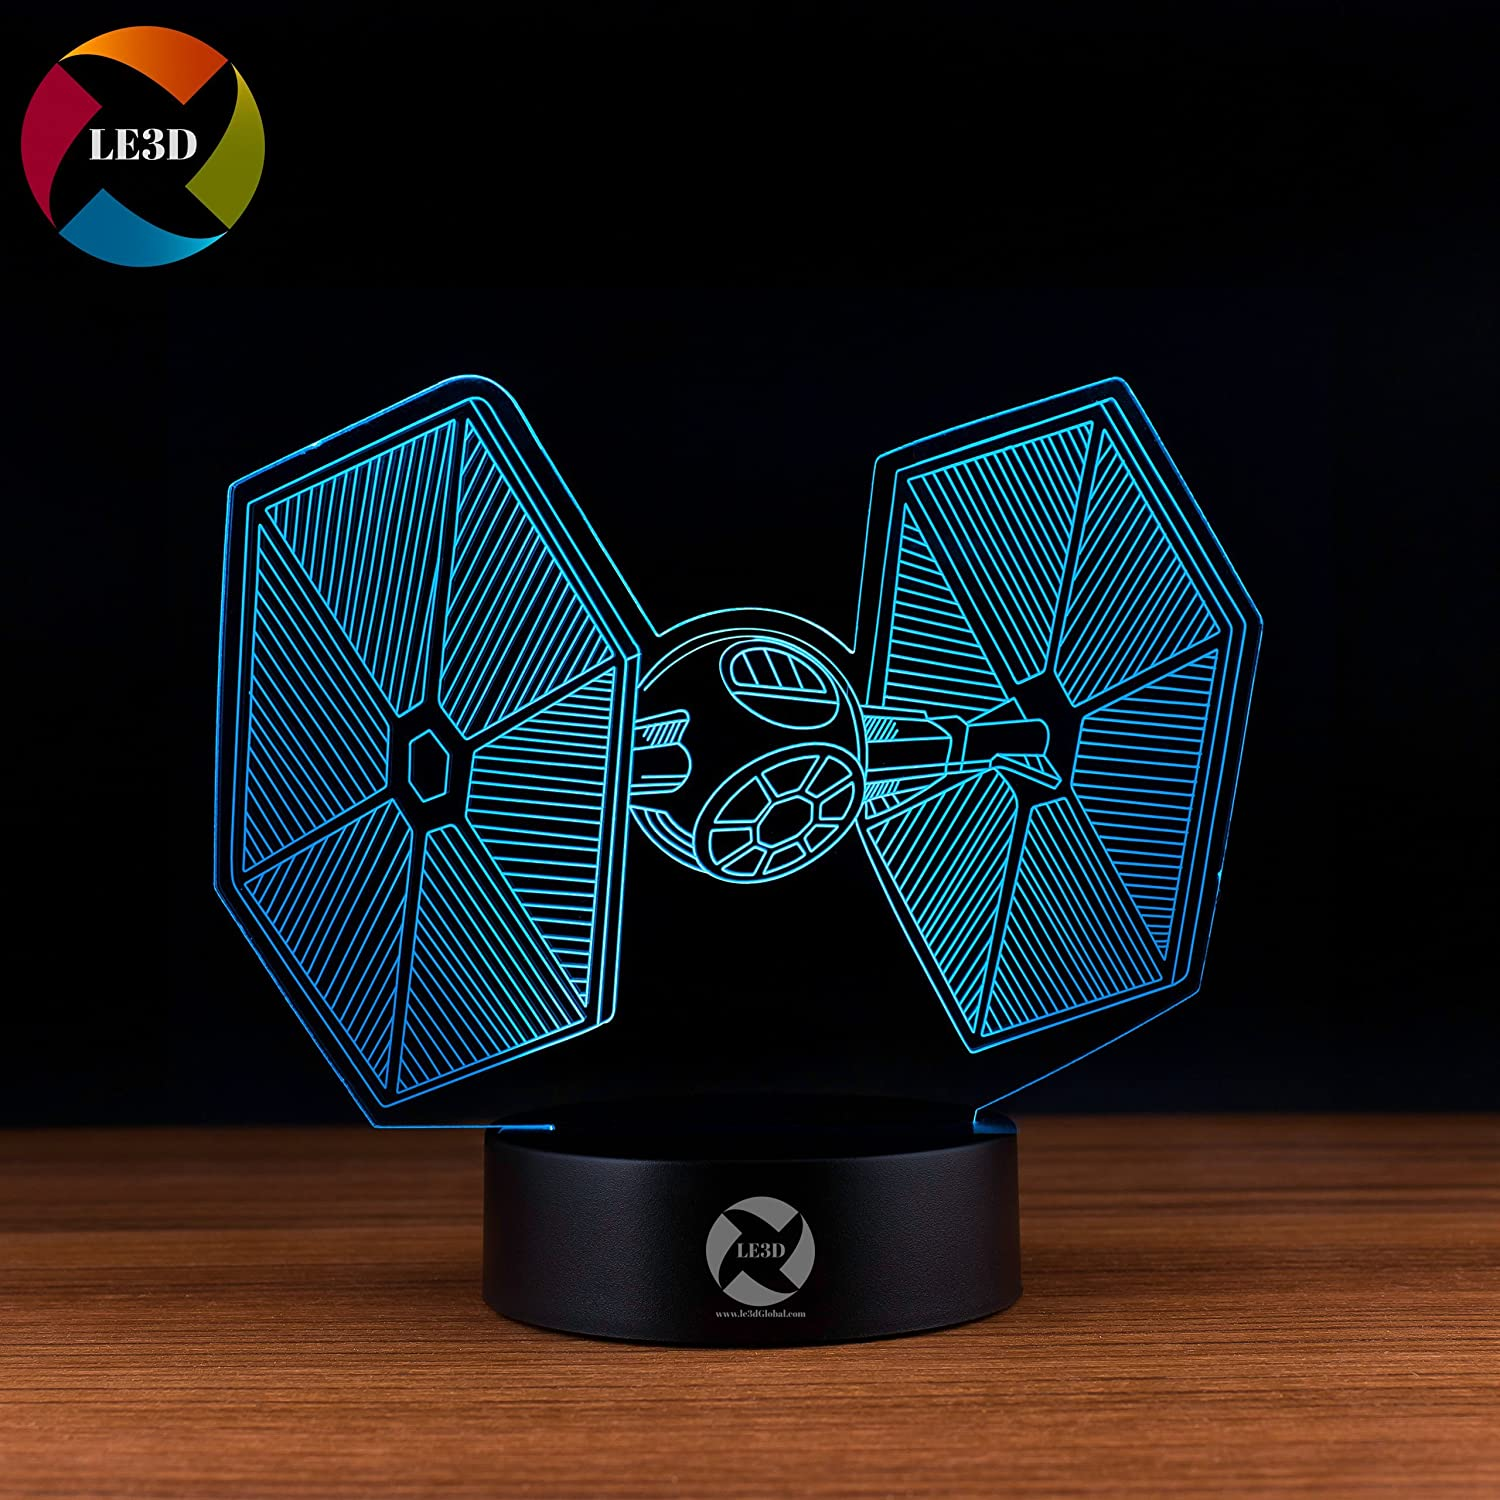 3D ナイトライト B0752WSH8Y 10609 Star Wars Tie Fighter Star Wars Tie Fighter